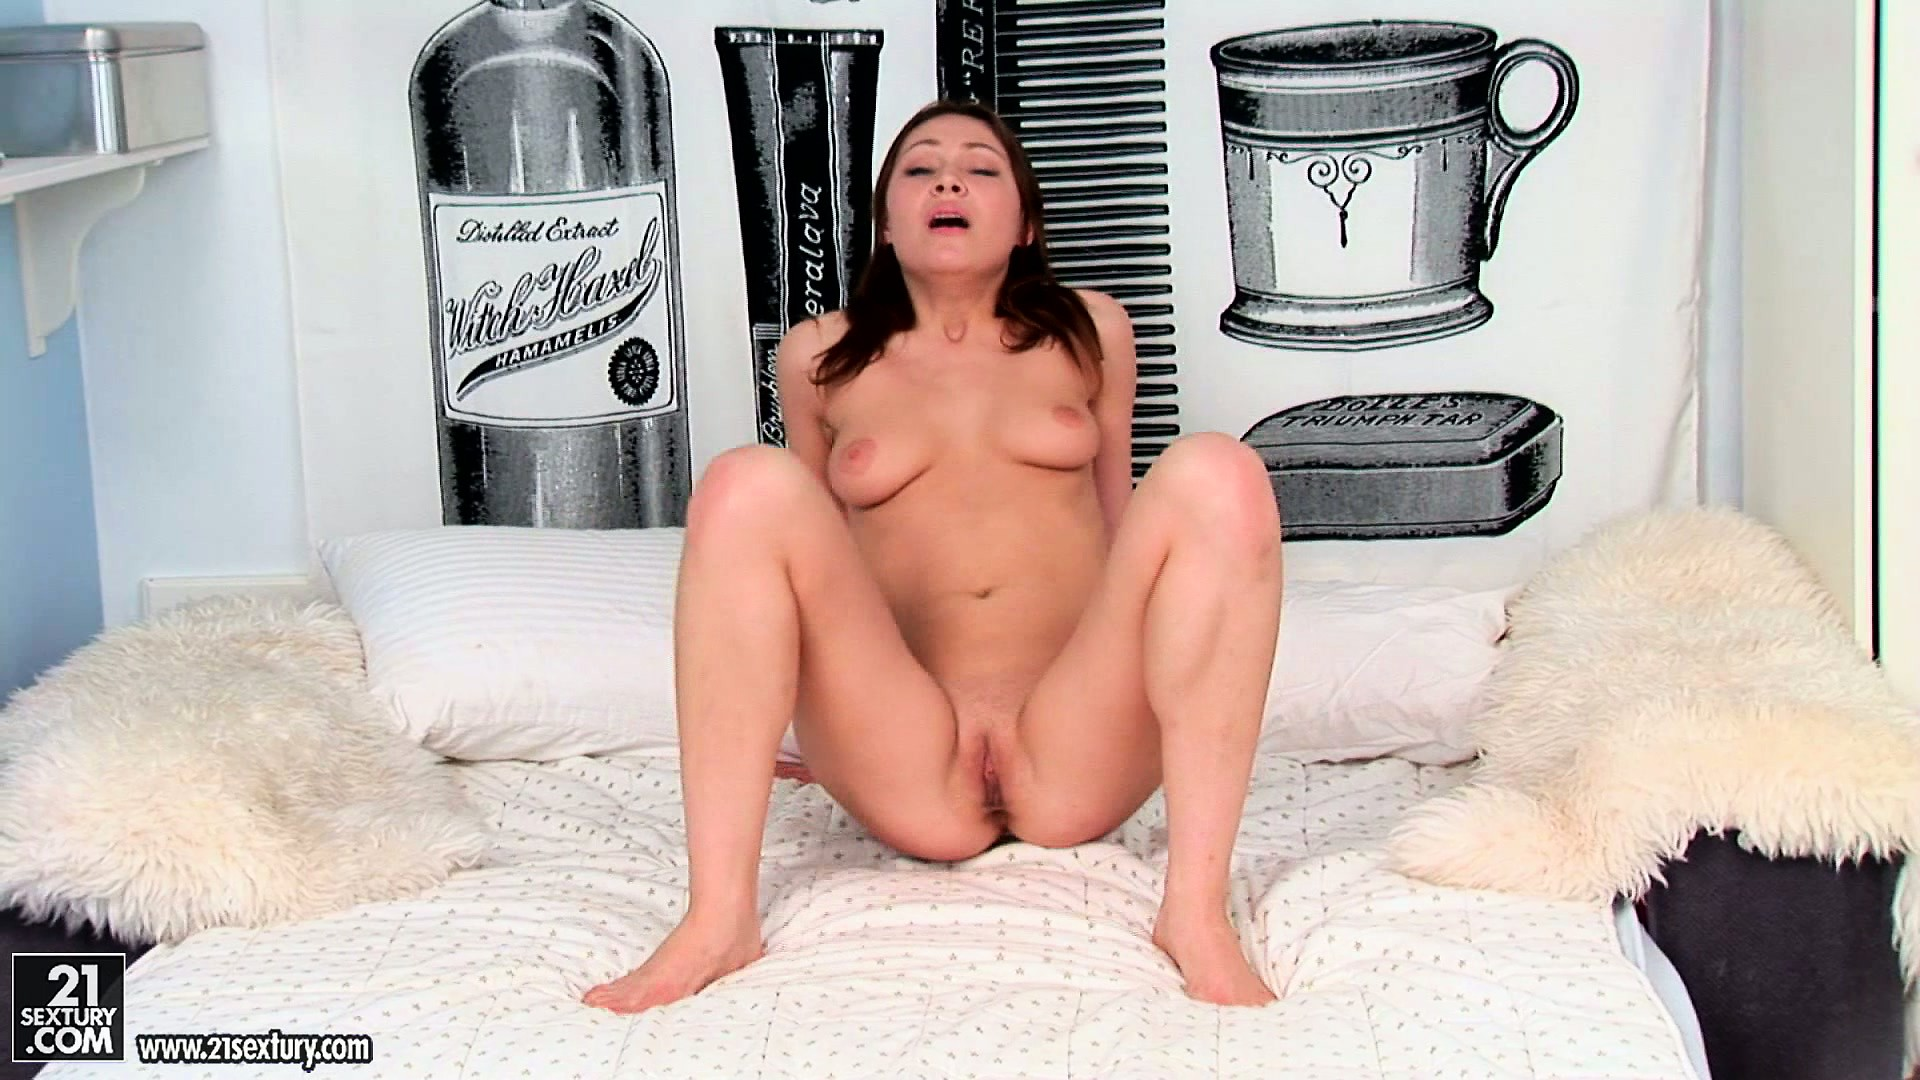 Porno Video of Macy, A Slim Girl With Cute Tits, Strips Her Panties And Plays With Her Sex Toy